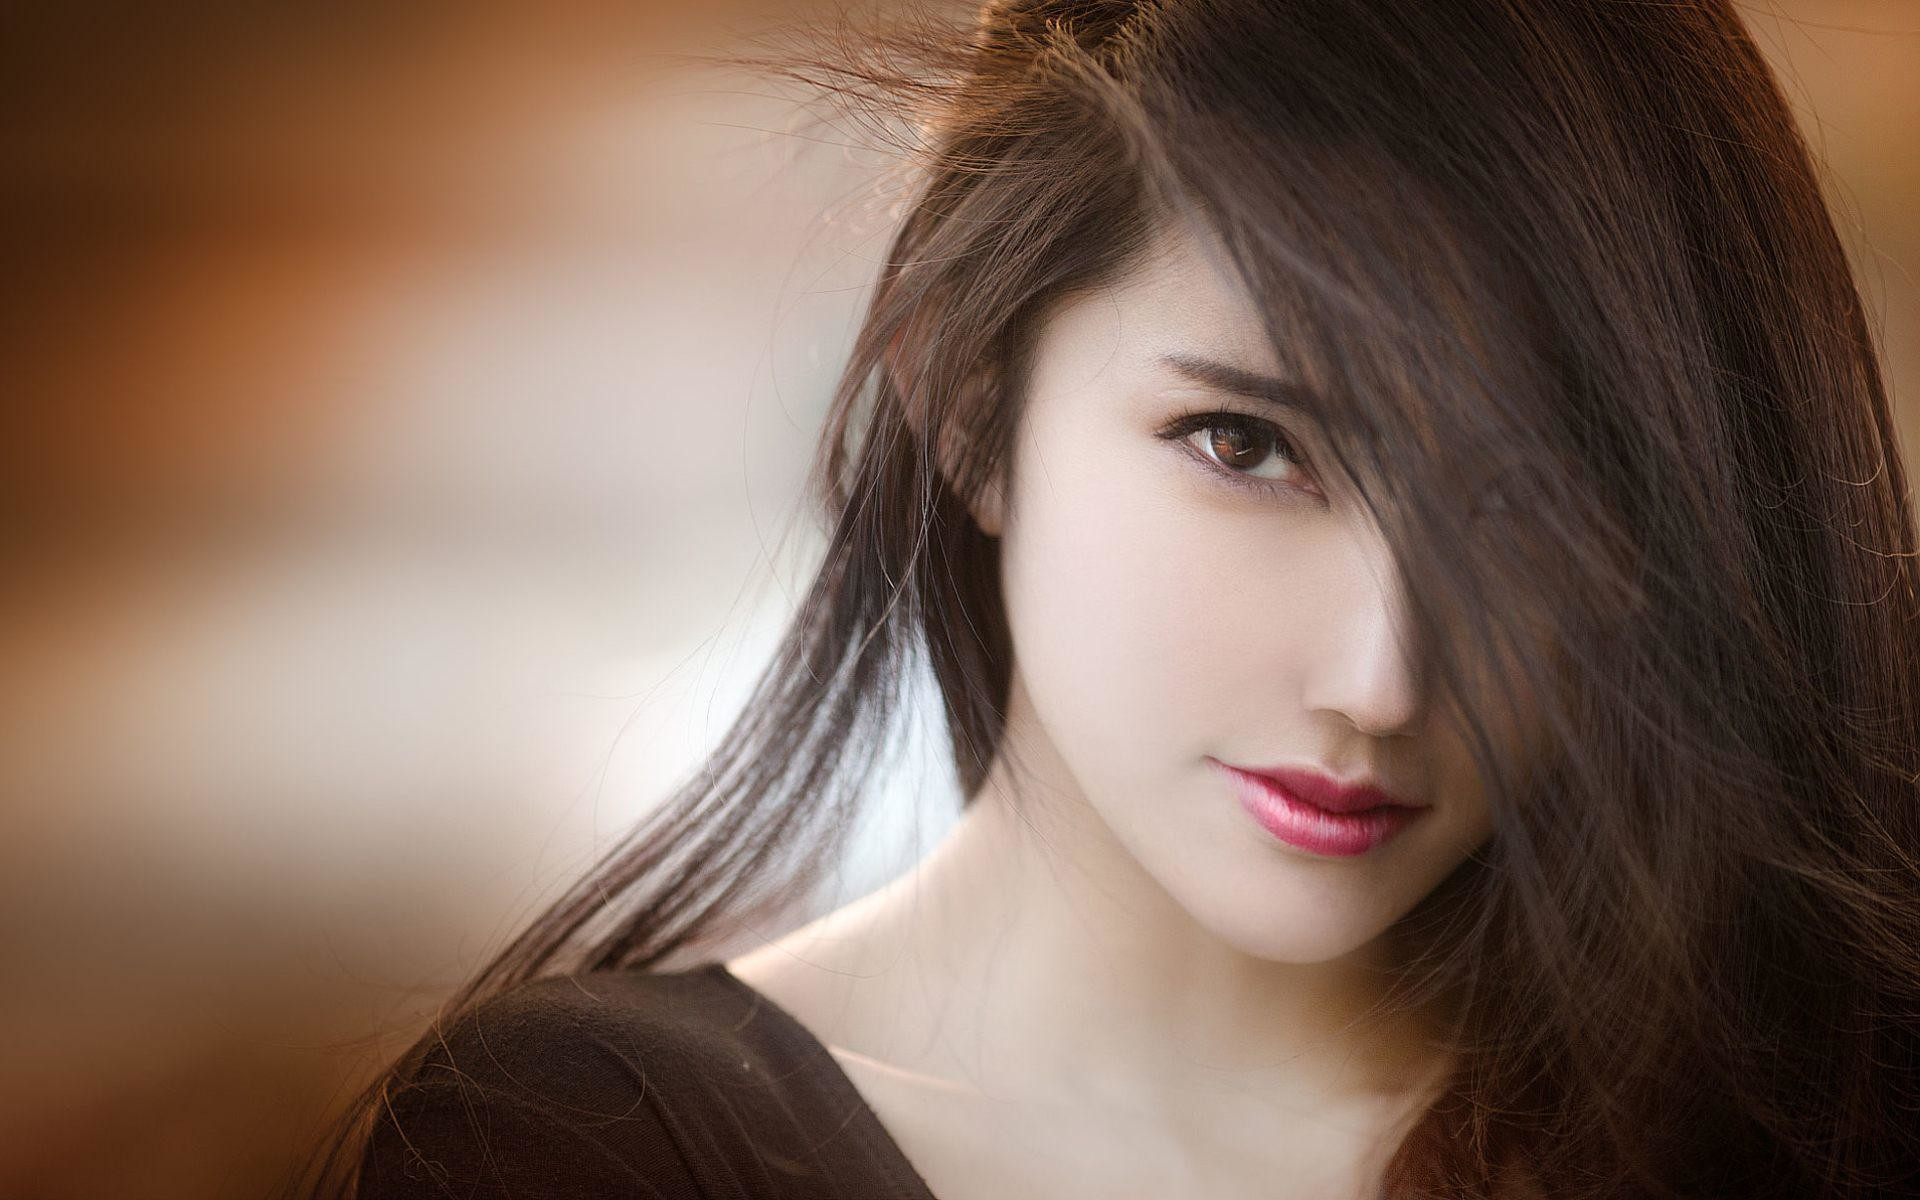 Most Beautiful Girls Wallpapers